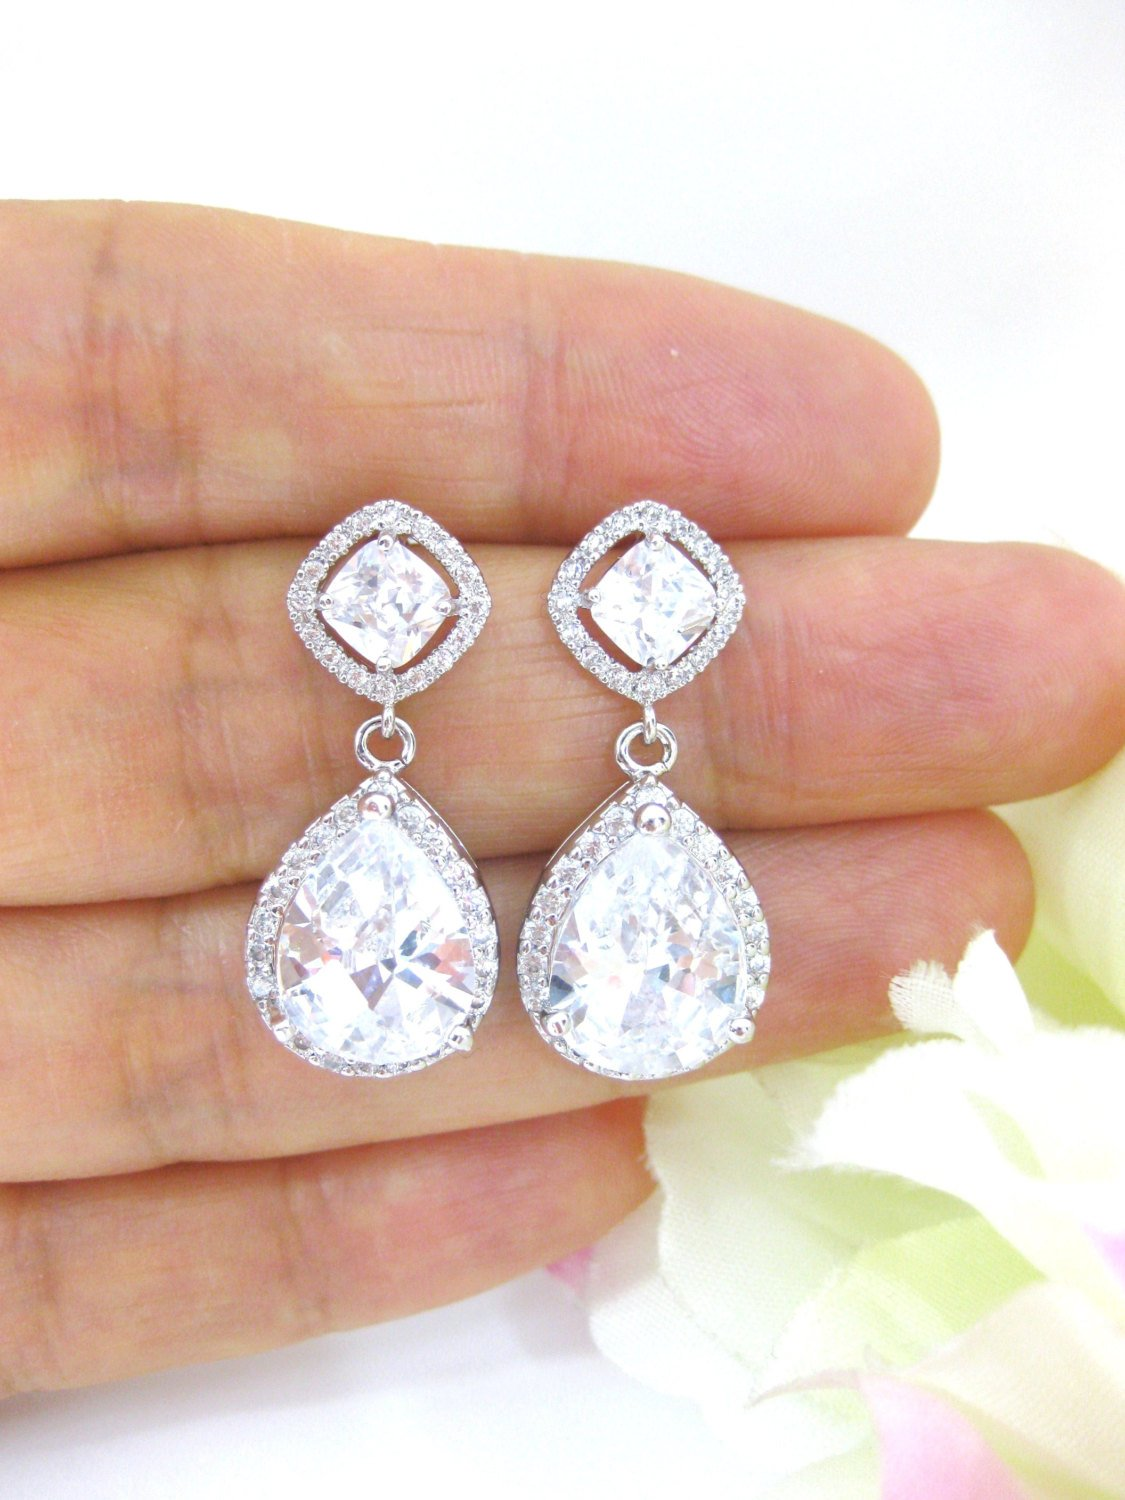 Bridal Cubic Zirconia Teardrop Earrings Wedding Earrings Large Lux Cubic Zirconia Crystal Earrings Square Cut Earrings Bridesmaid Gift(E153)